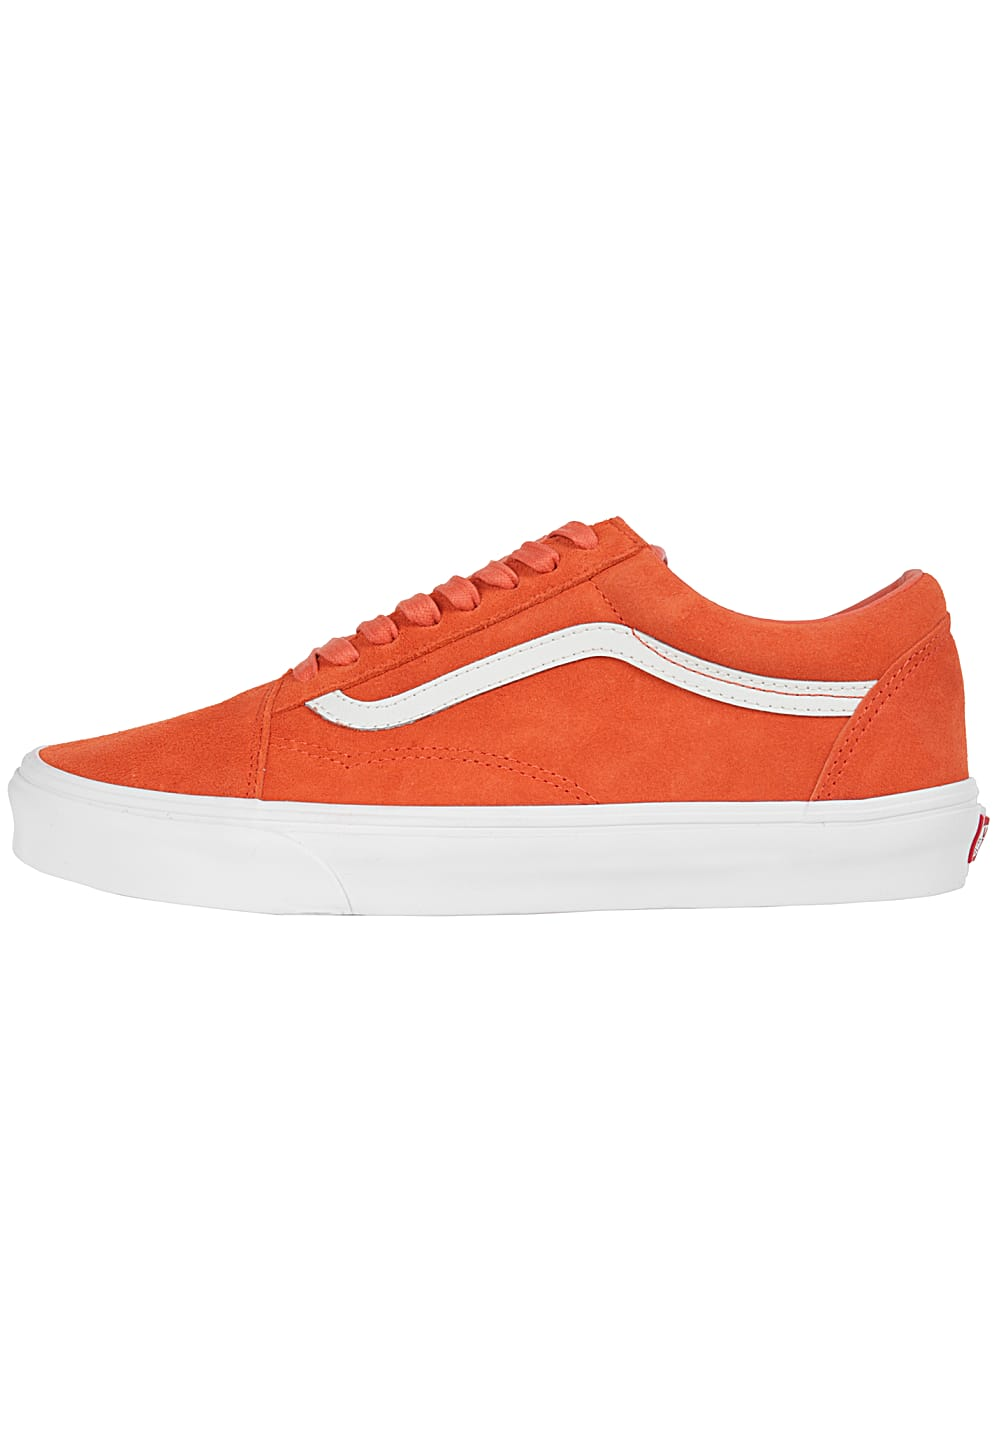 5b0ae5567 Vans Old Skool - Zapatillas - Naranja - Planet Sports